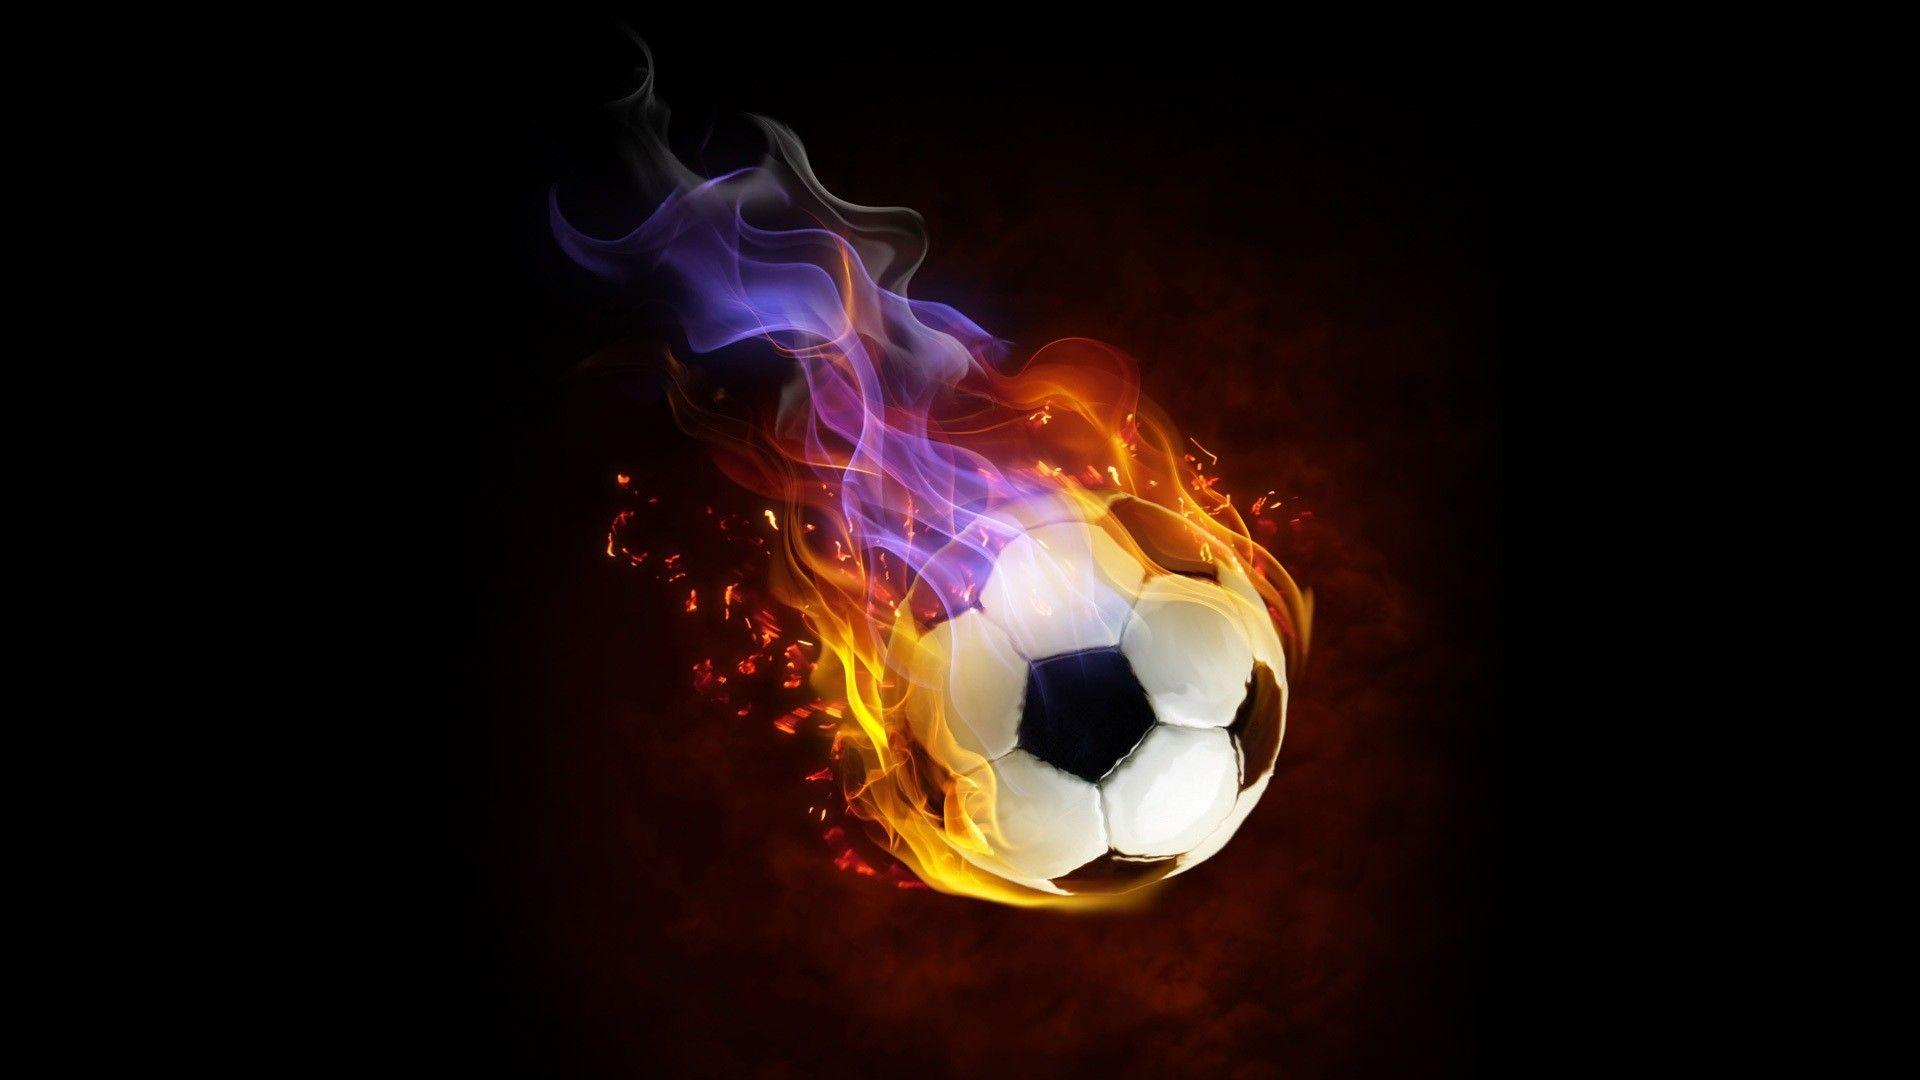 The Ball On Fire Soccer Football Sports Qhd Wallpaper 2